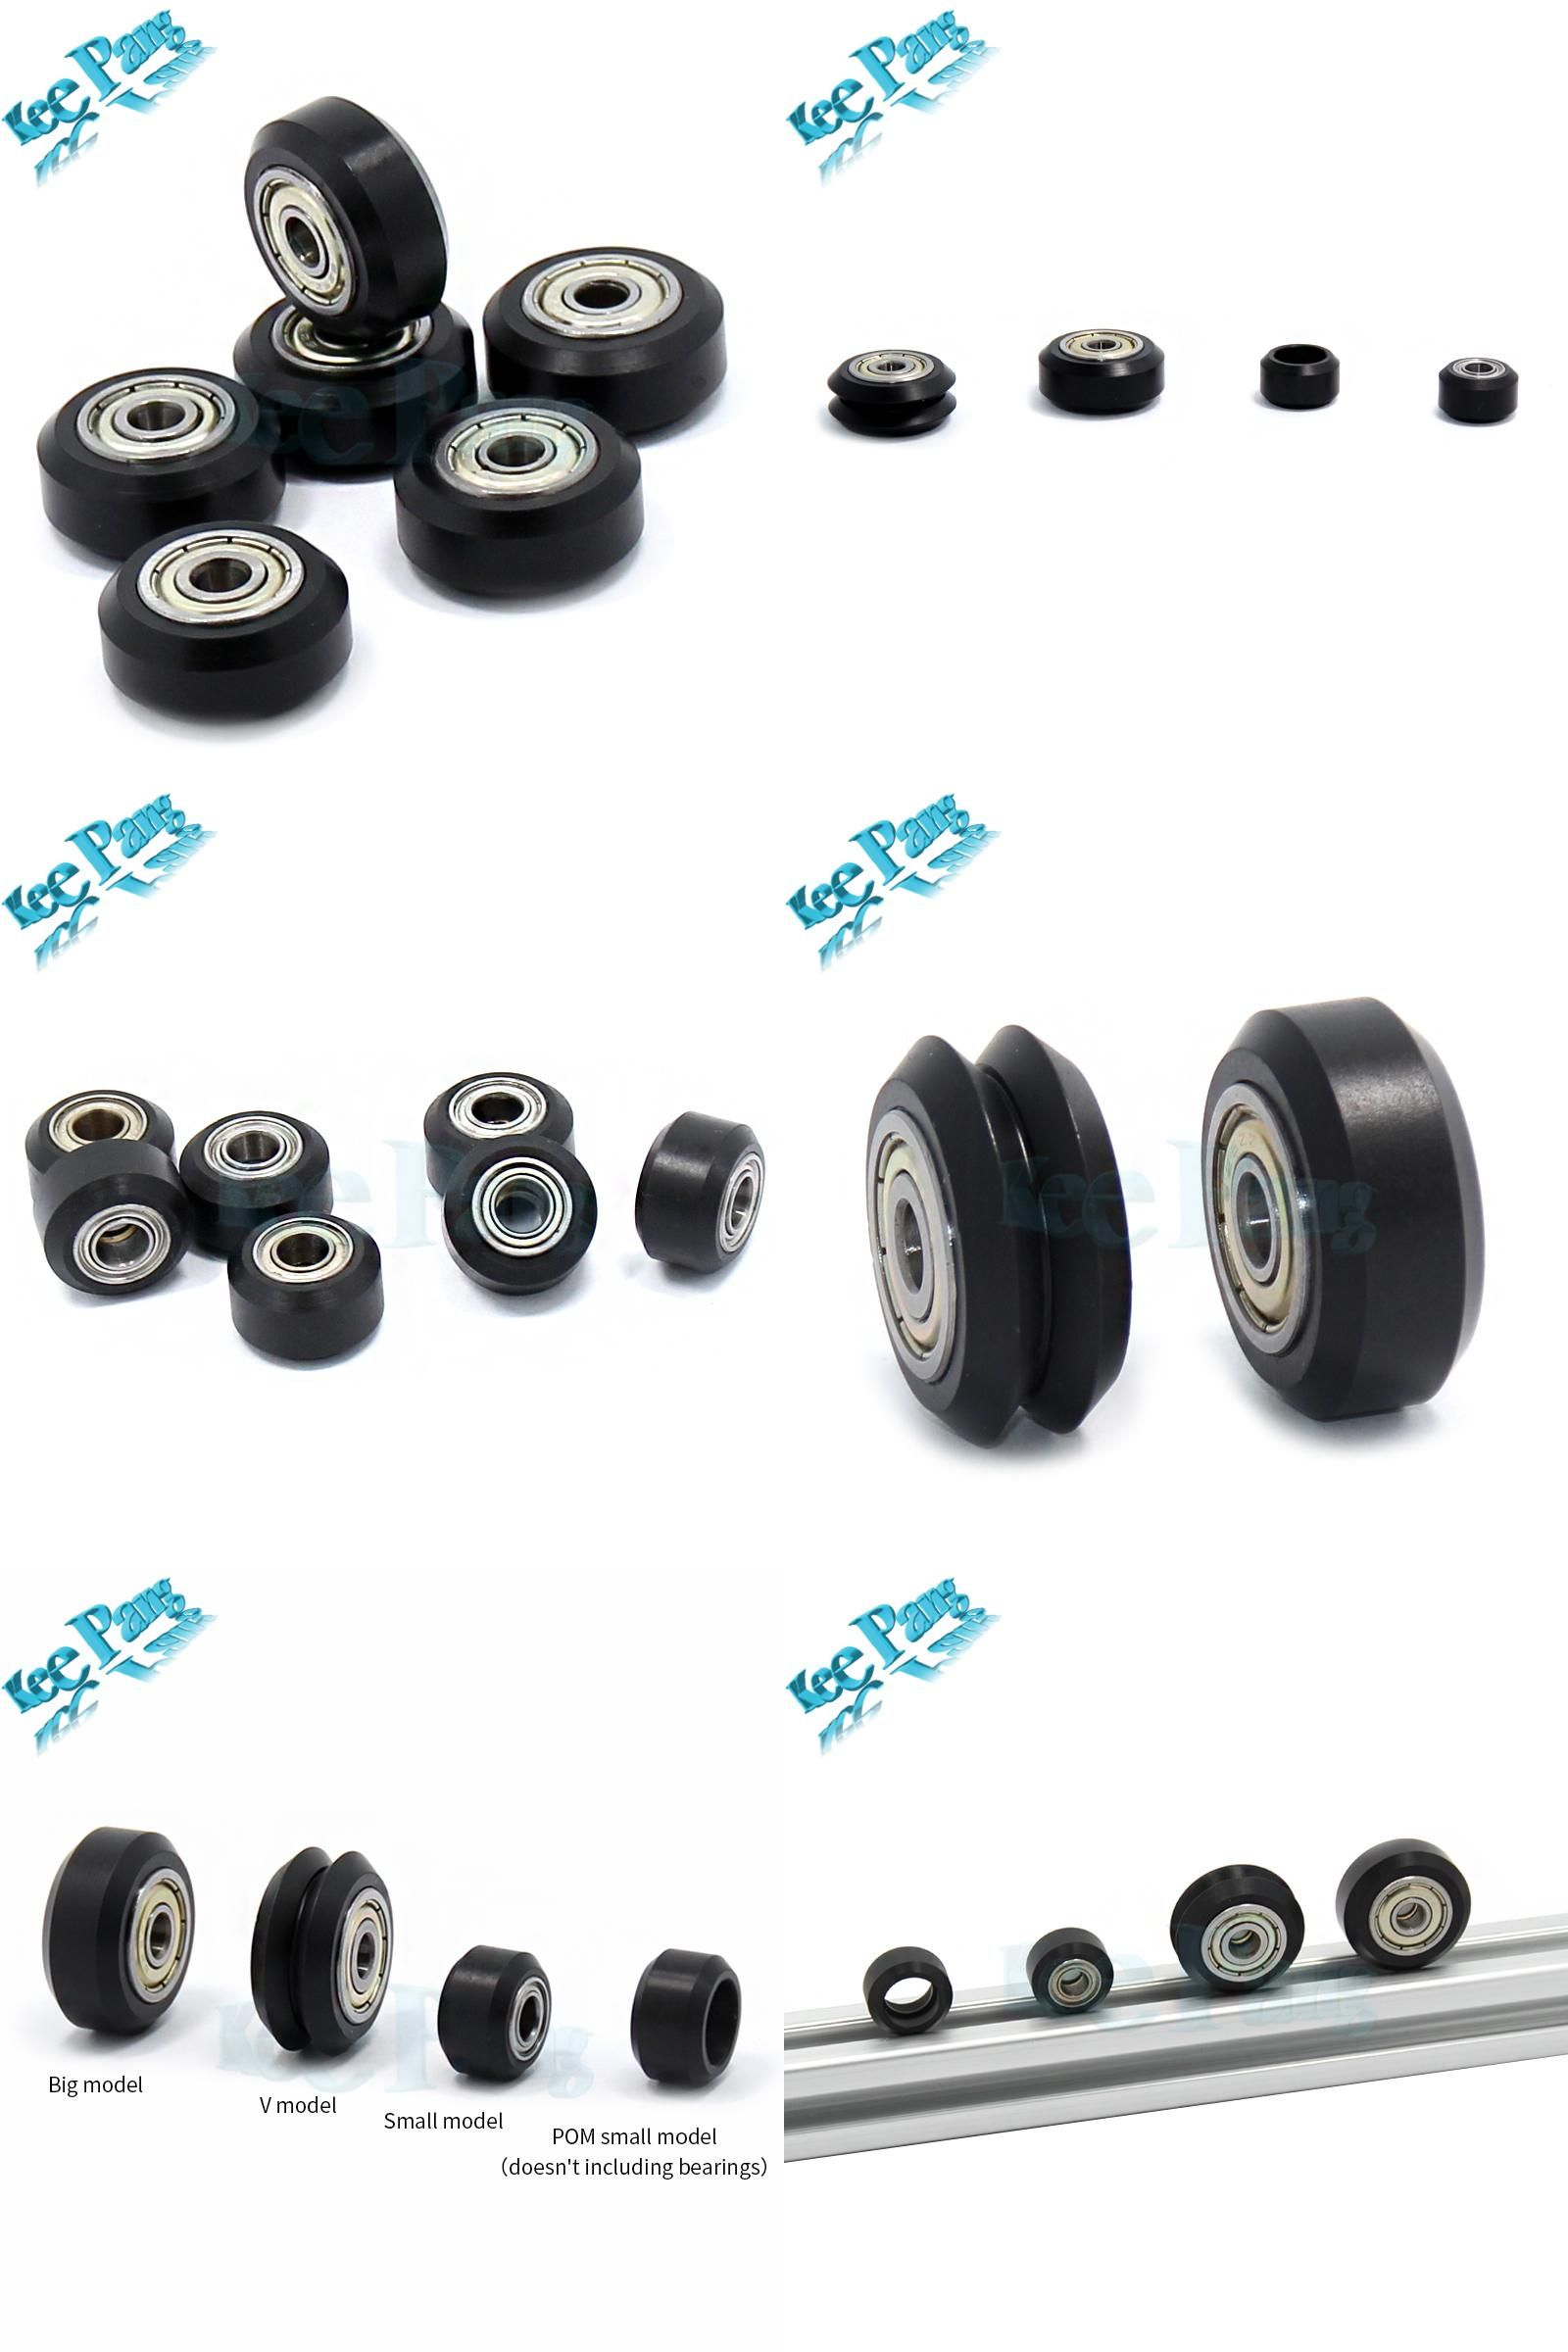 Visit to Buy] POM Plastic Wheel Pulleys Small Big V-slot Models ...